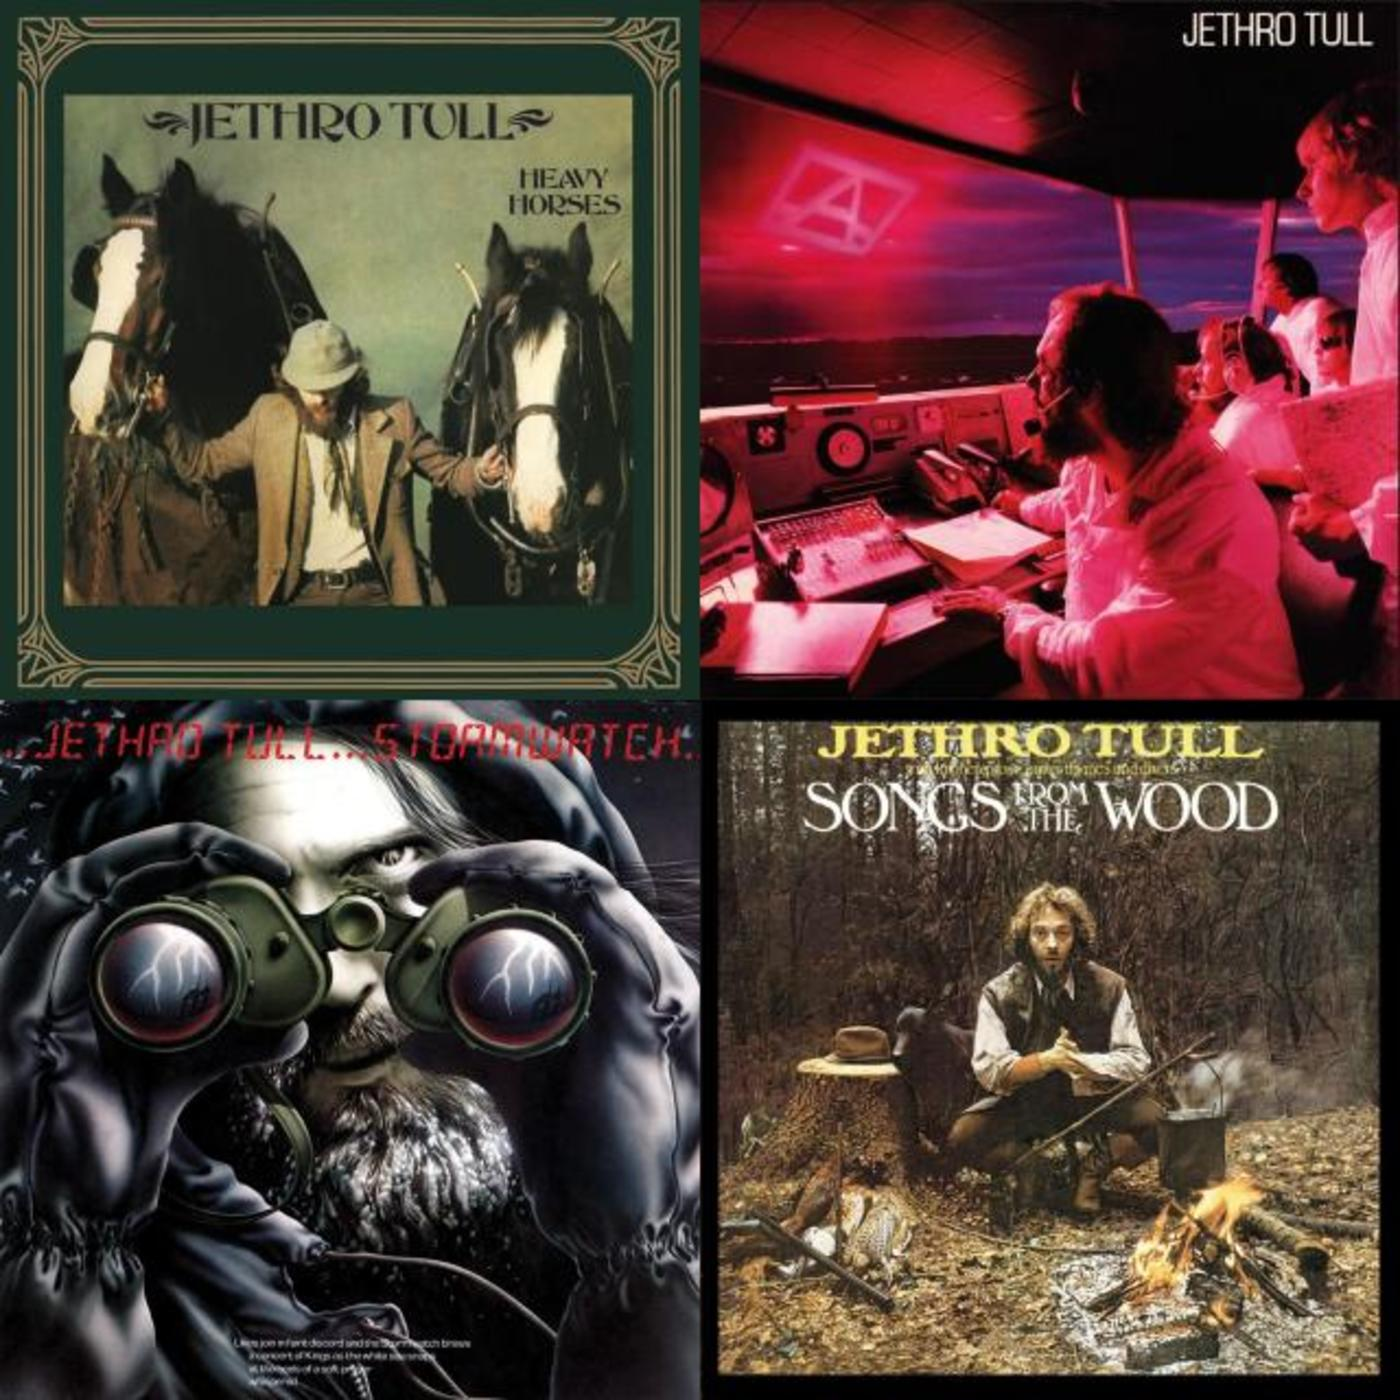 Jethro Tull: An 'Original Album Series' Sampler